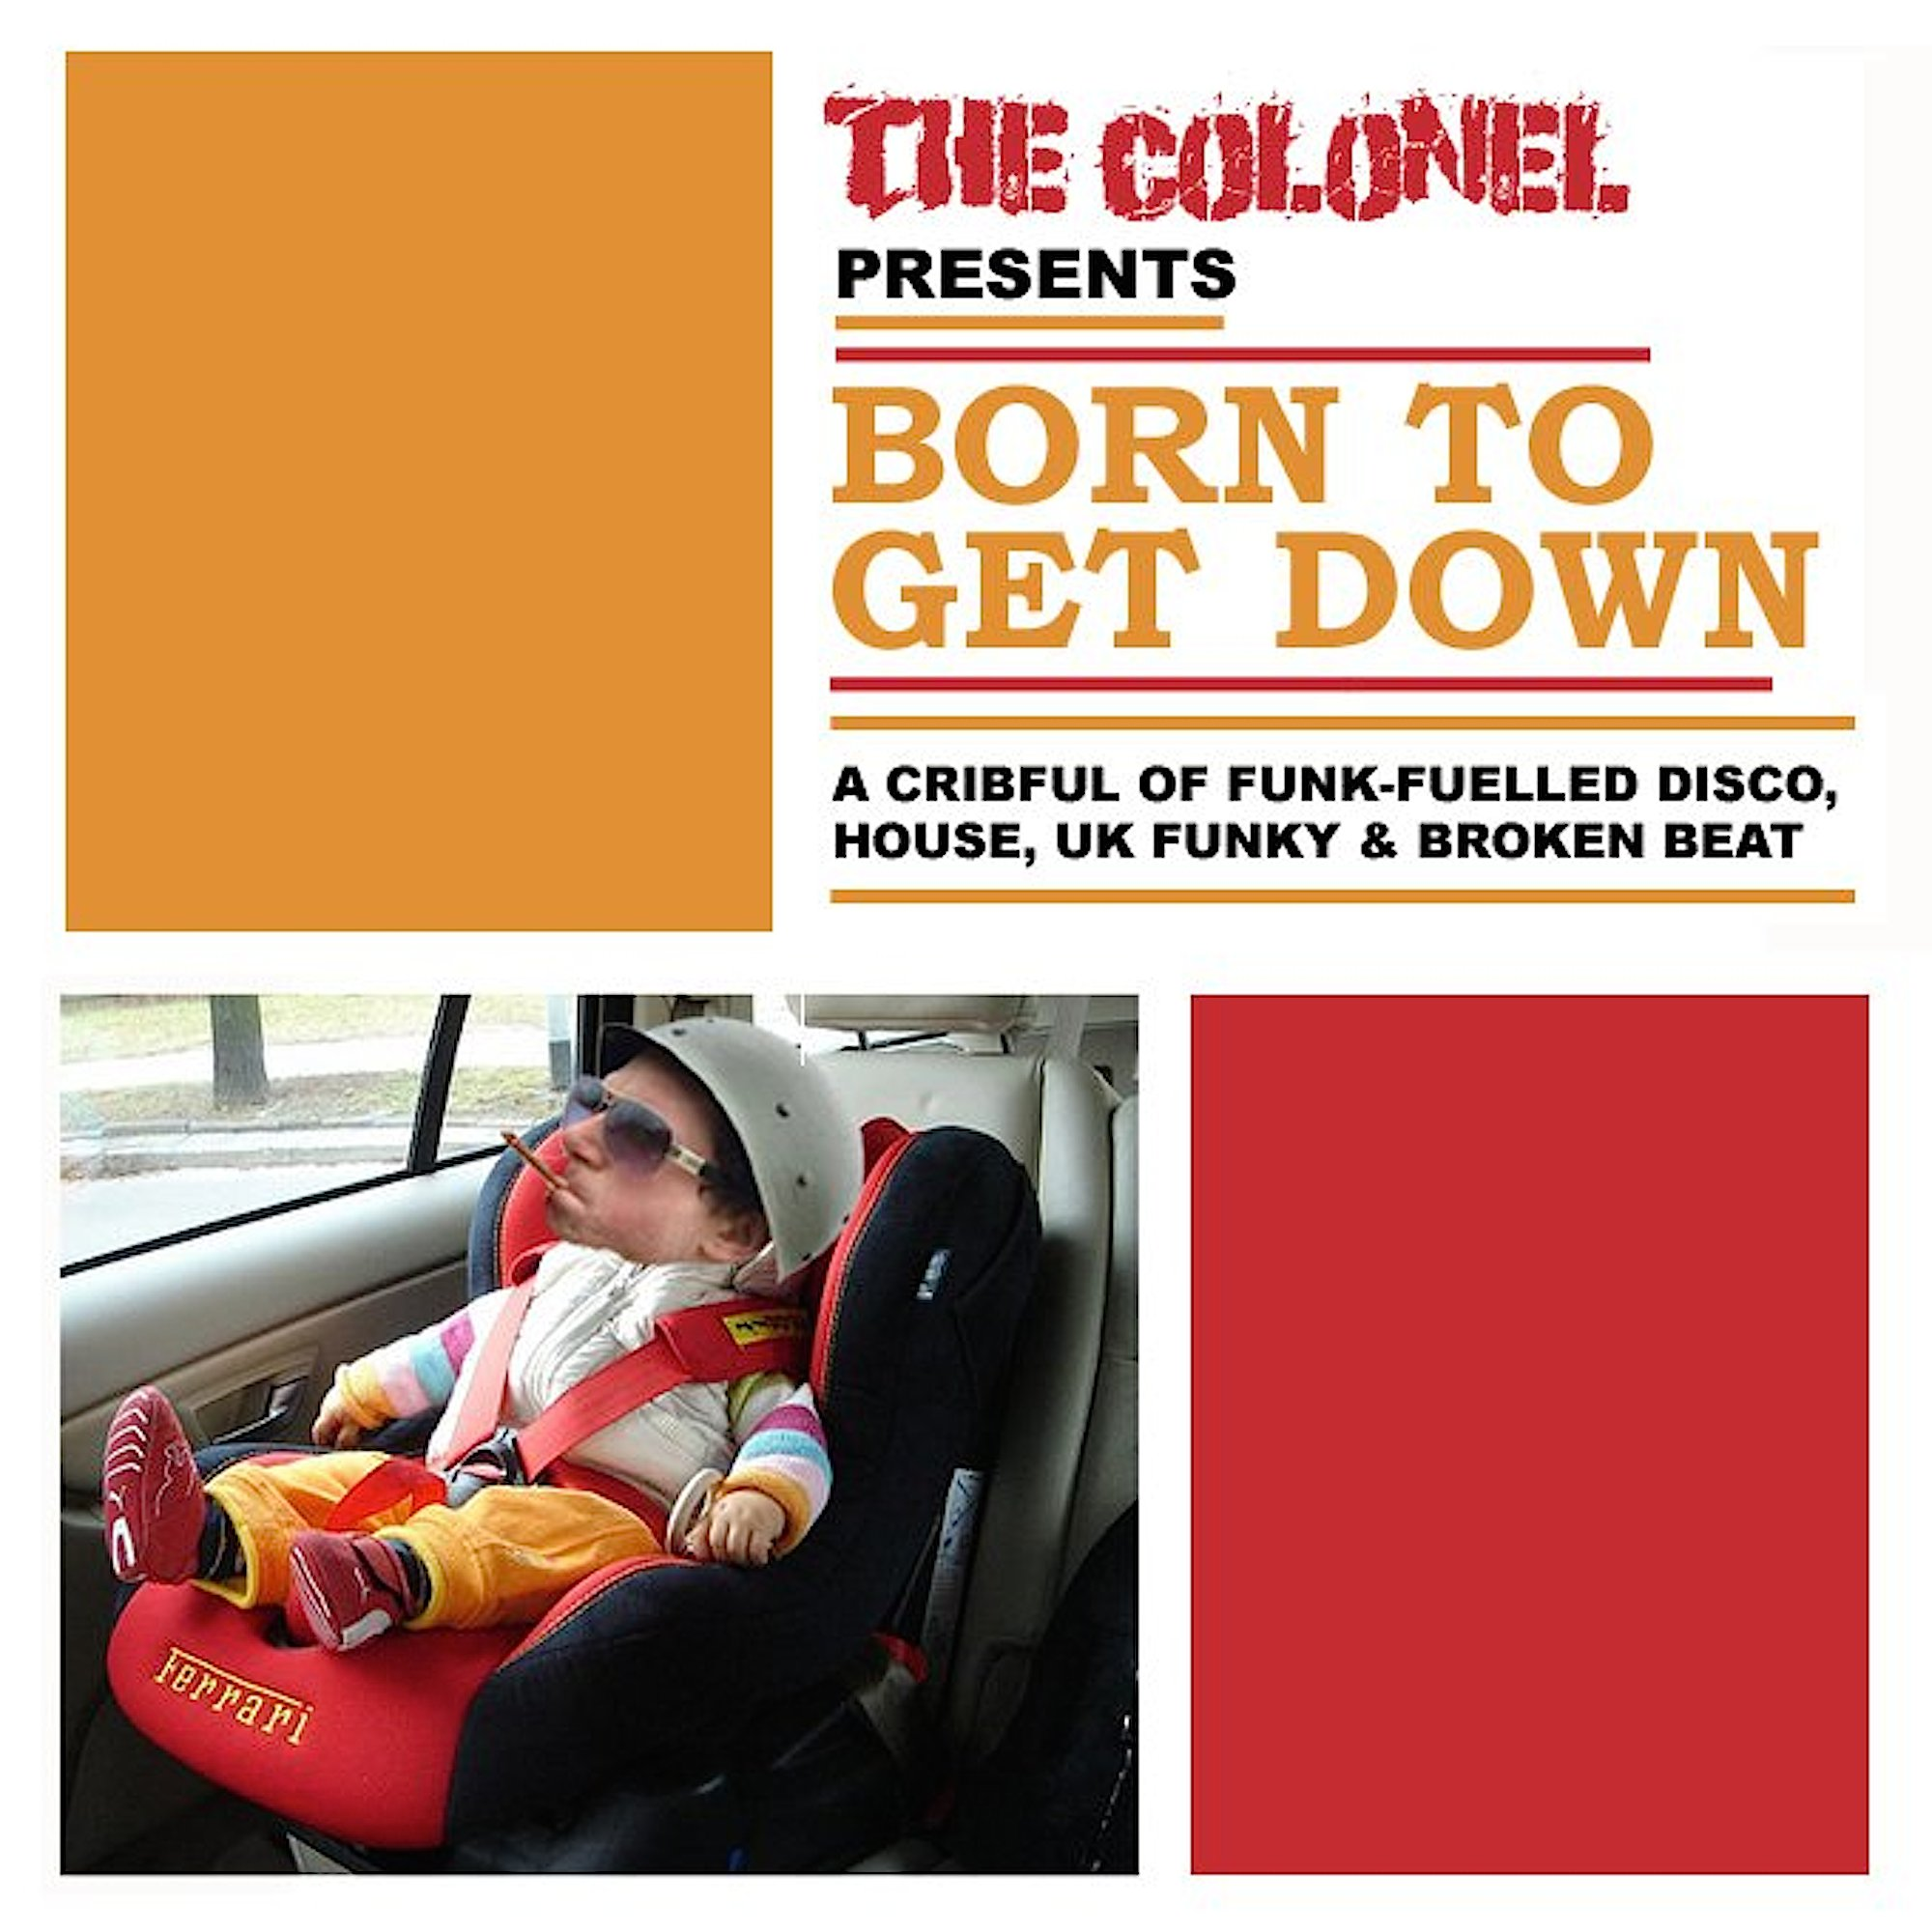 The Colonel 'Born To Get Down' cover art.